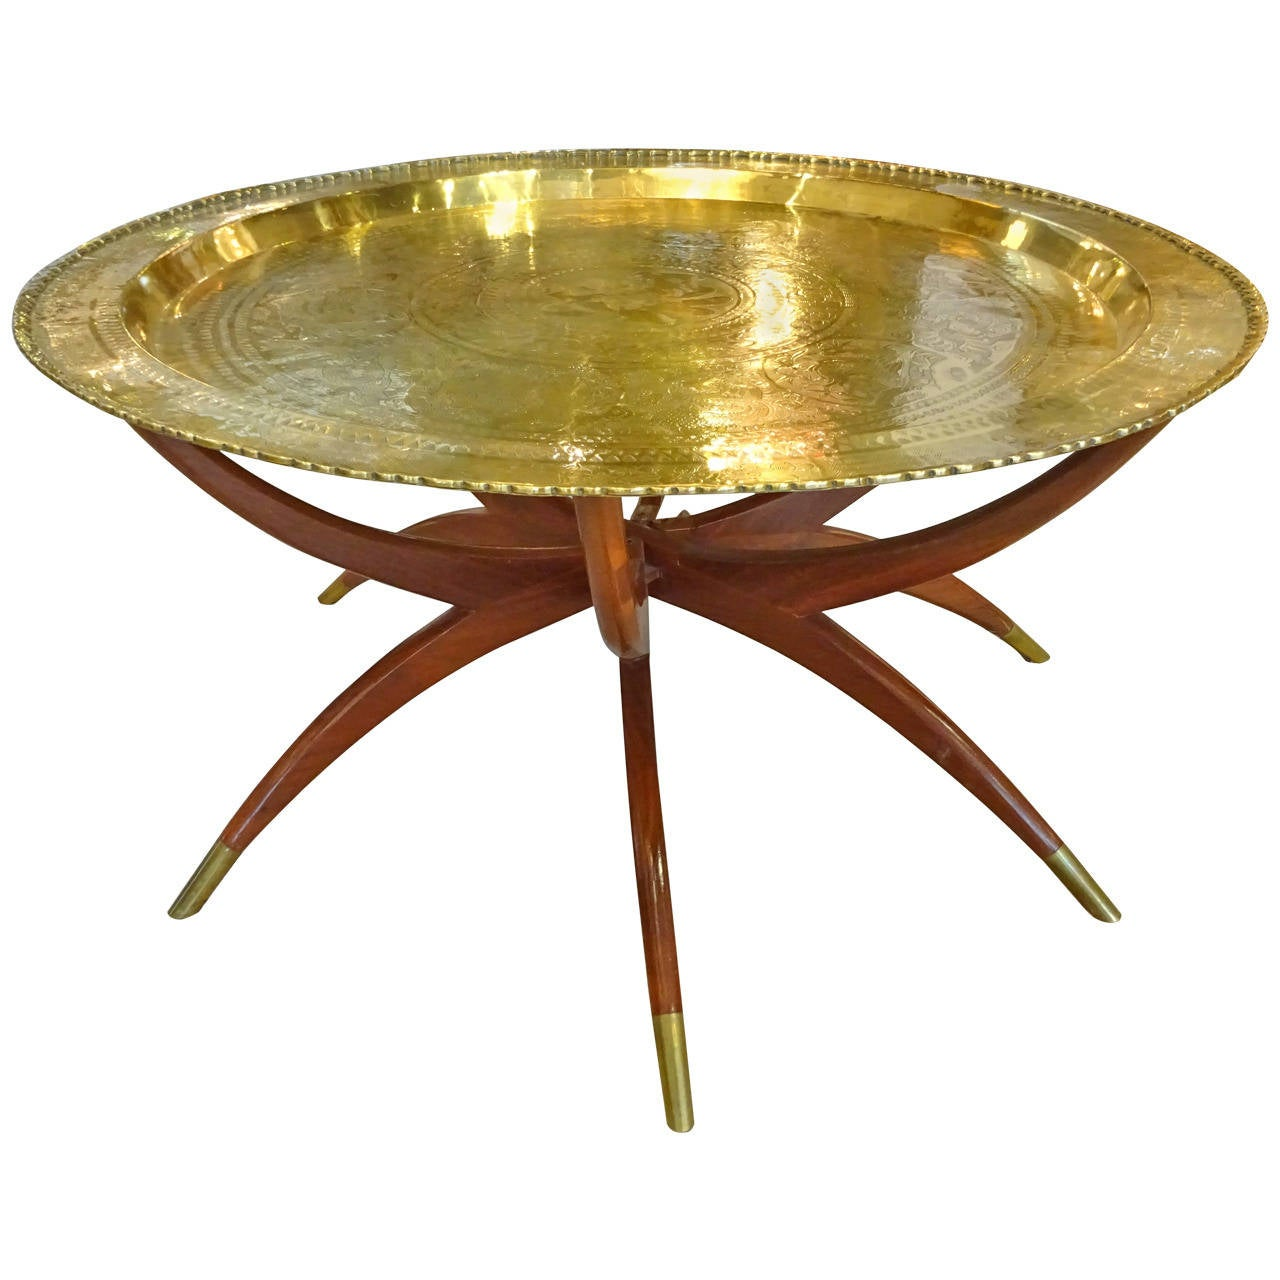 Coffee Table Legs Brass: Chinese Brass-Top, Spider Leg Coffee Table At 1stdibs